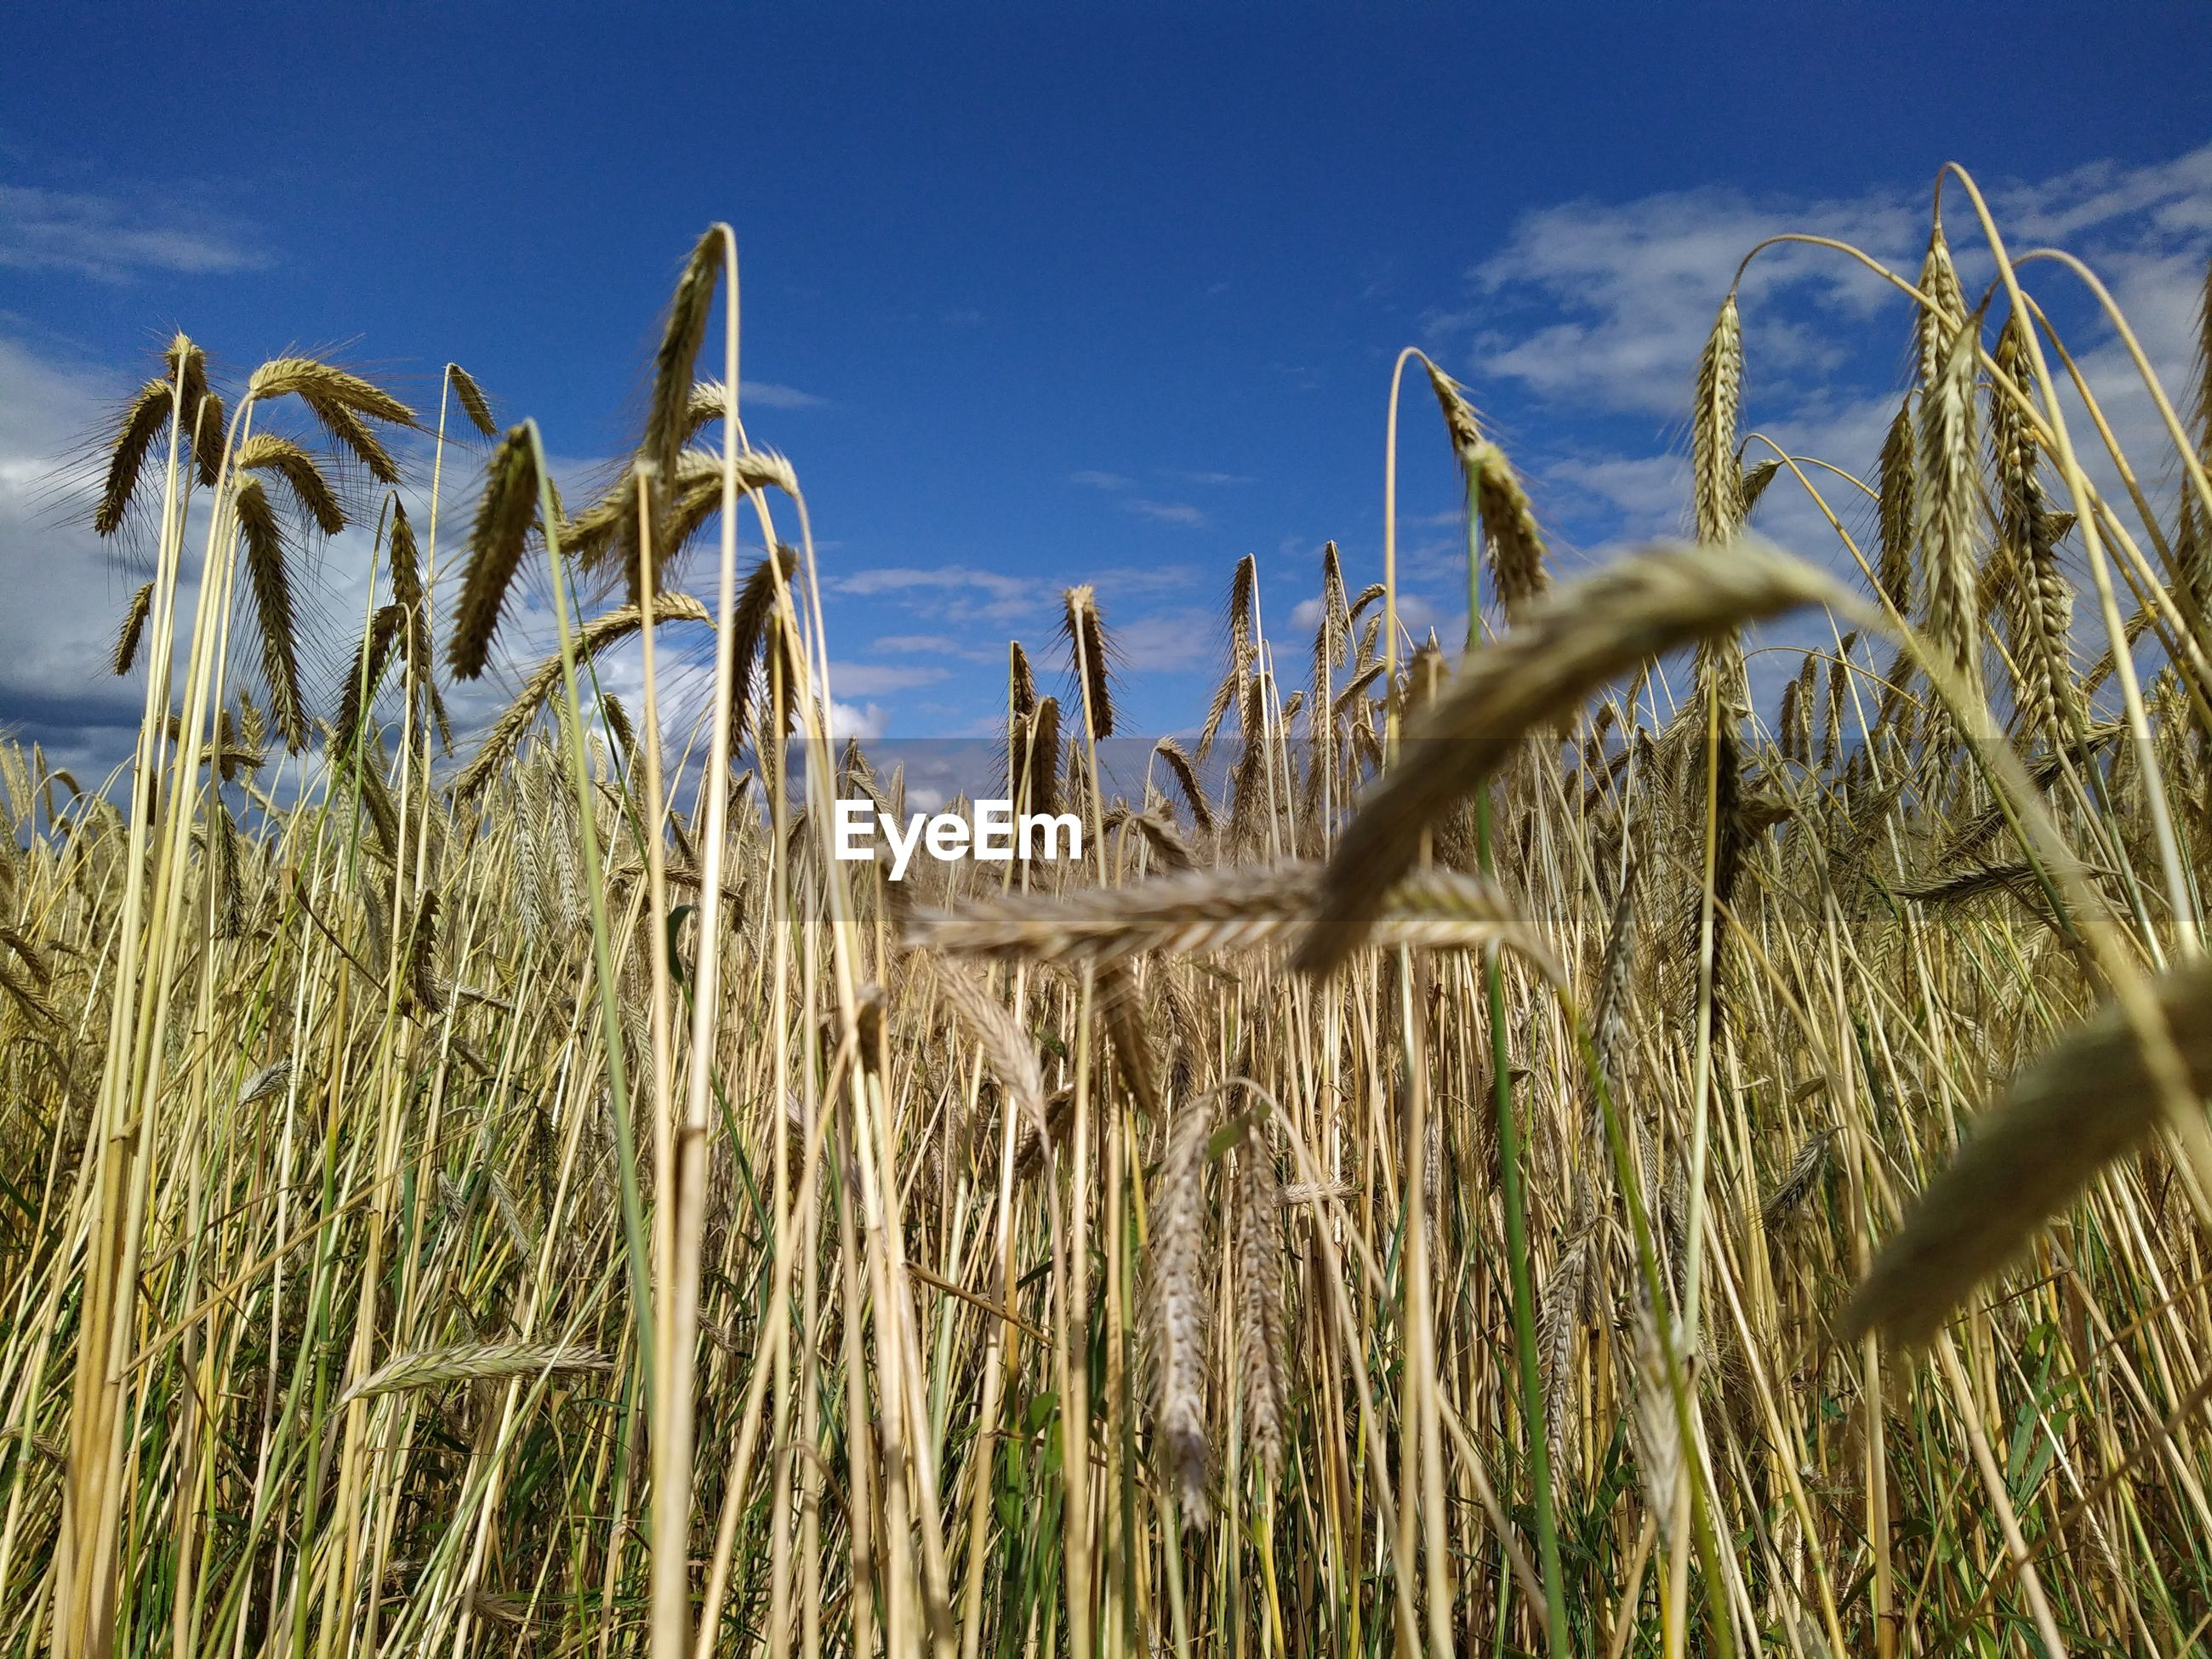 CLOSE-UP OF WHEAT FIELD AGAINST BLUE SKY